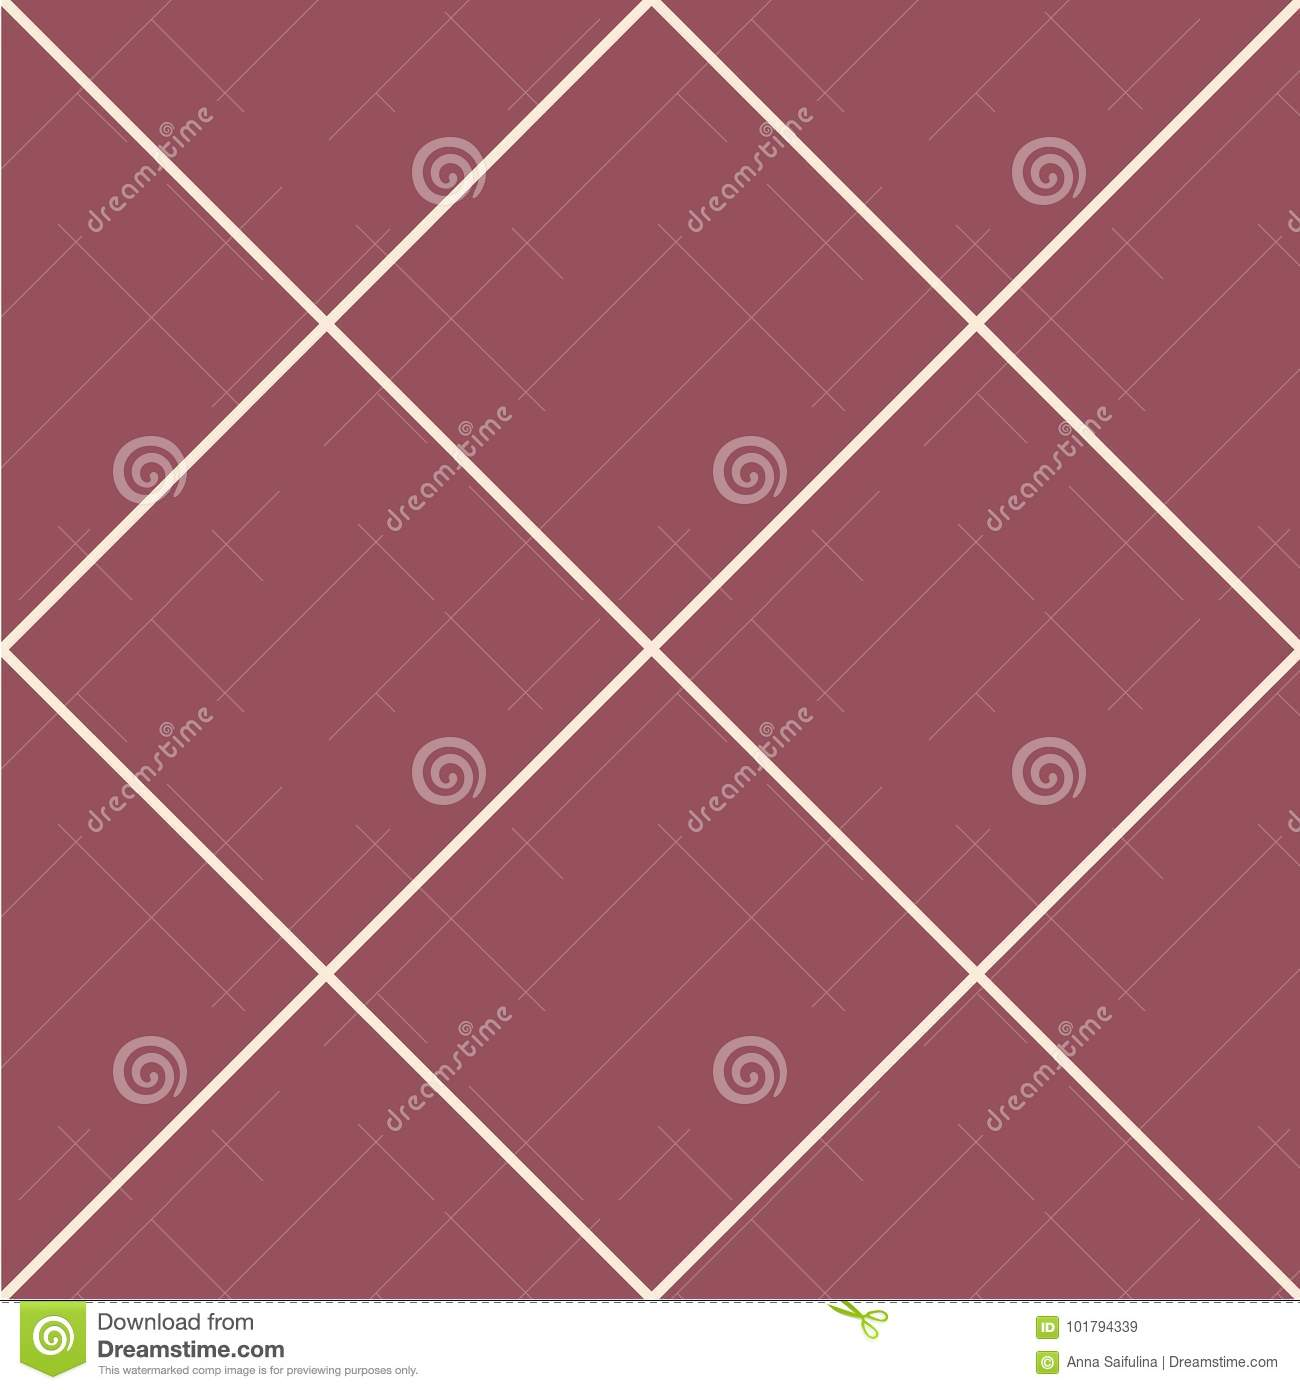 Pattern With The Mesh, Grid. Seamless Vector Background